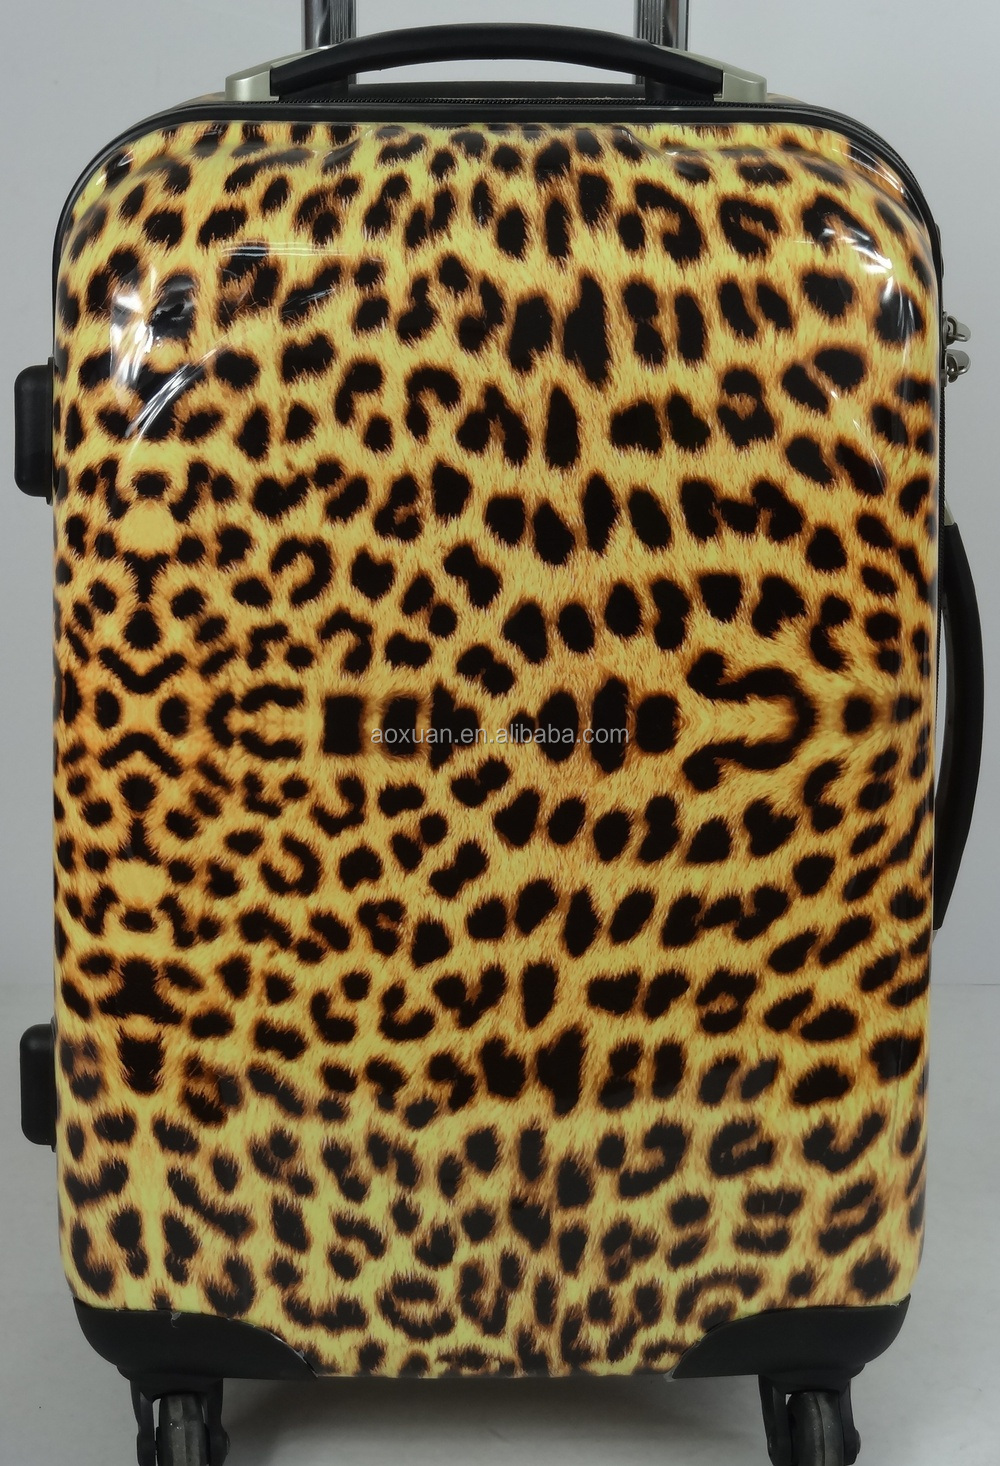 Alibaba printed Leopard grain abs/PC trolley luggage with good quality